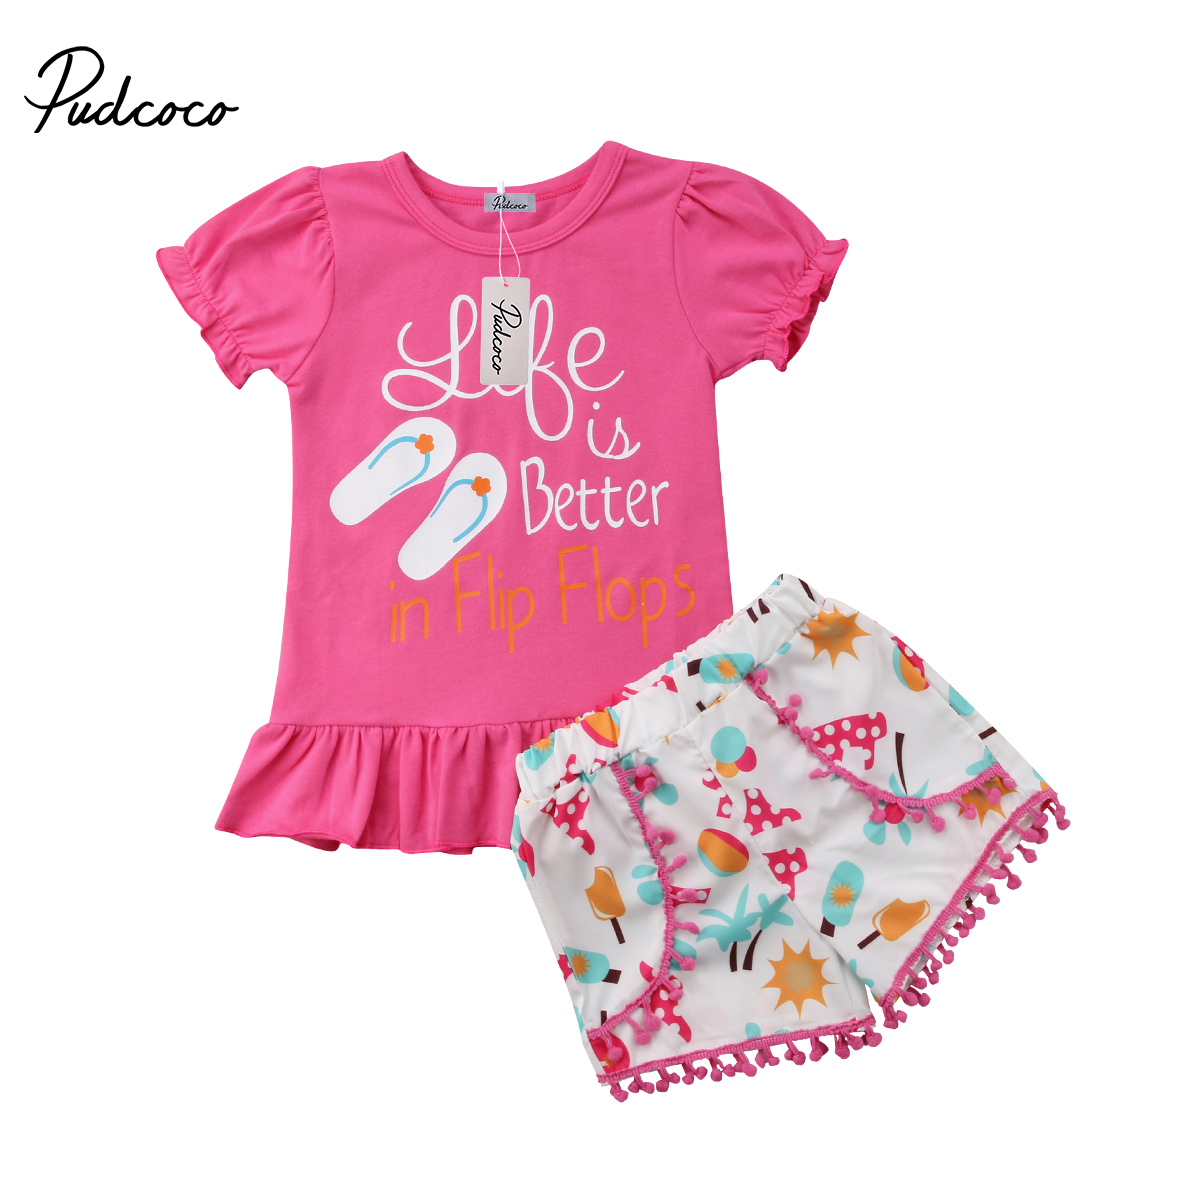 2018 Brand New 2PCS Toddler Infant Kid Baby Girls Summer T-shirt Tops+Pants Tassel Shorts Outfit Clothes Slipper Summer Set 1-6T цена